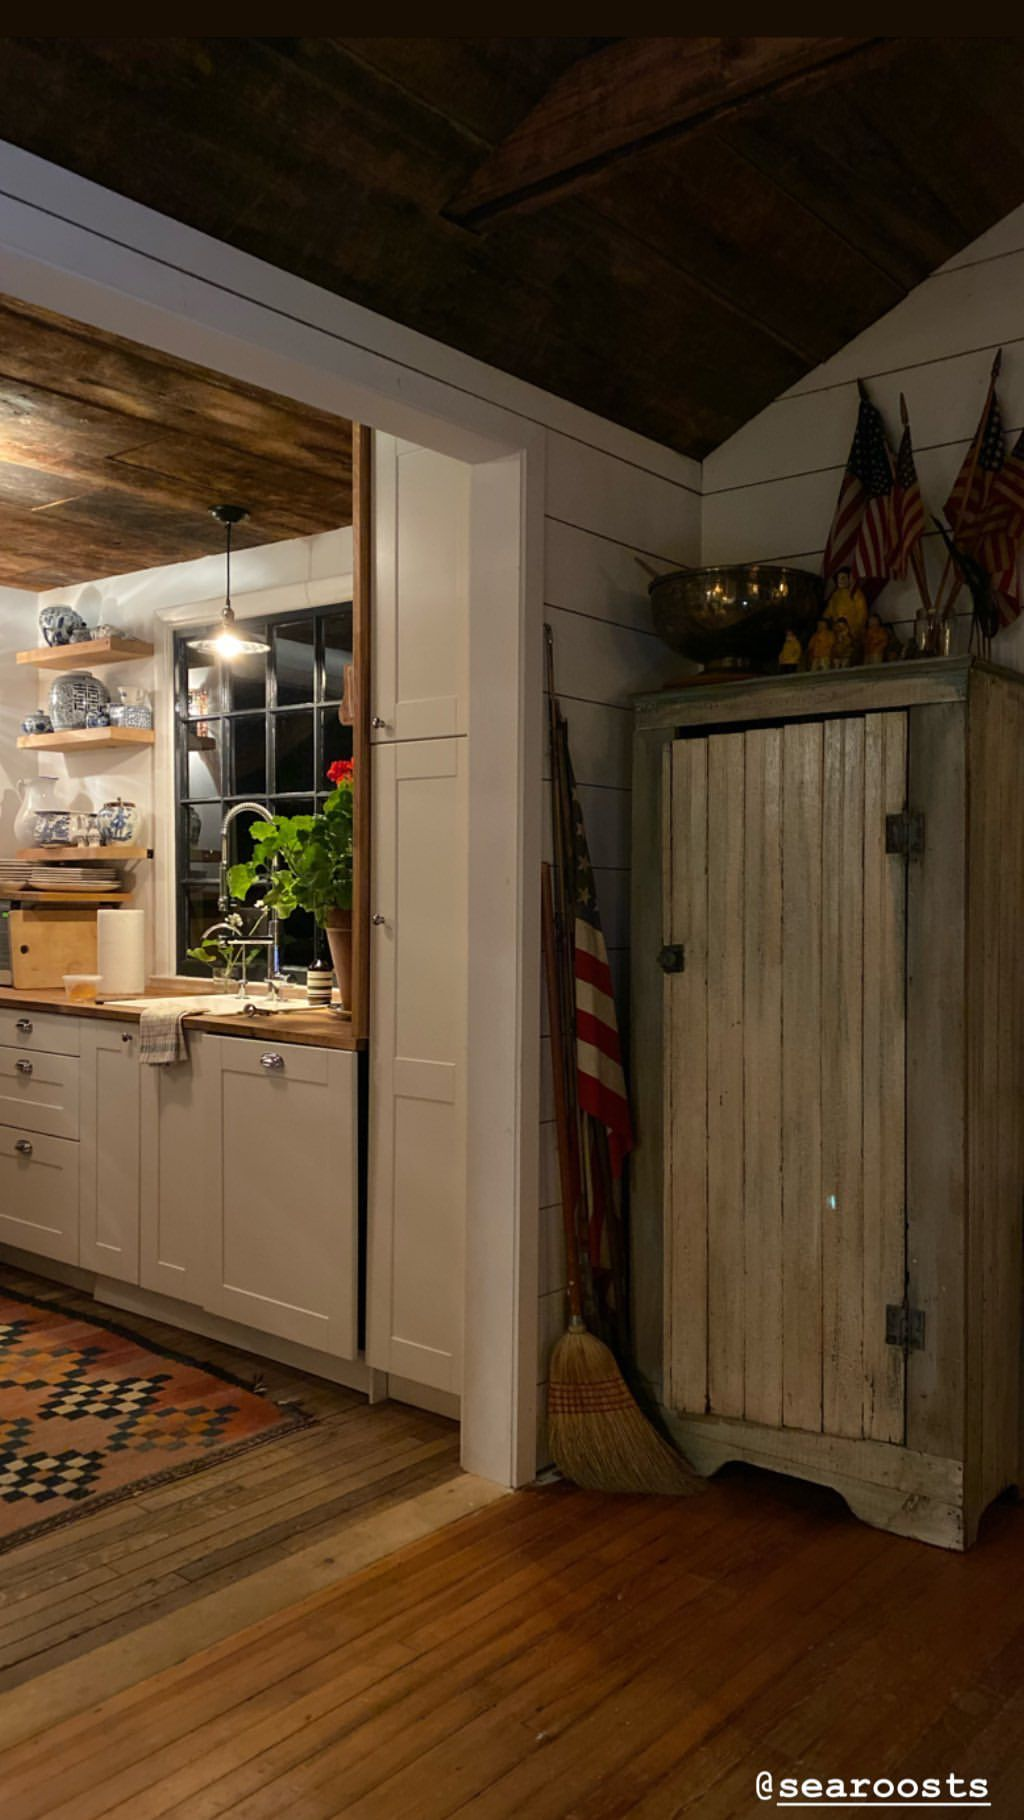 Pin by Geri Parisi on Cabin Living Cabin living, Cabin, Live